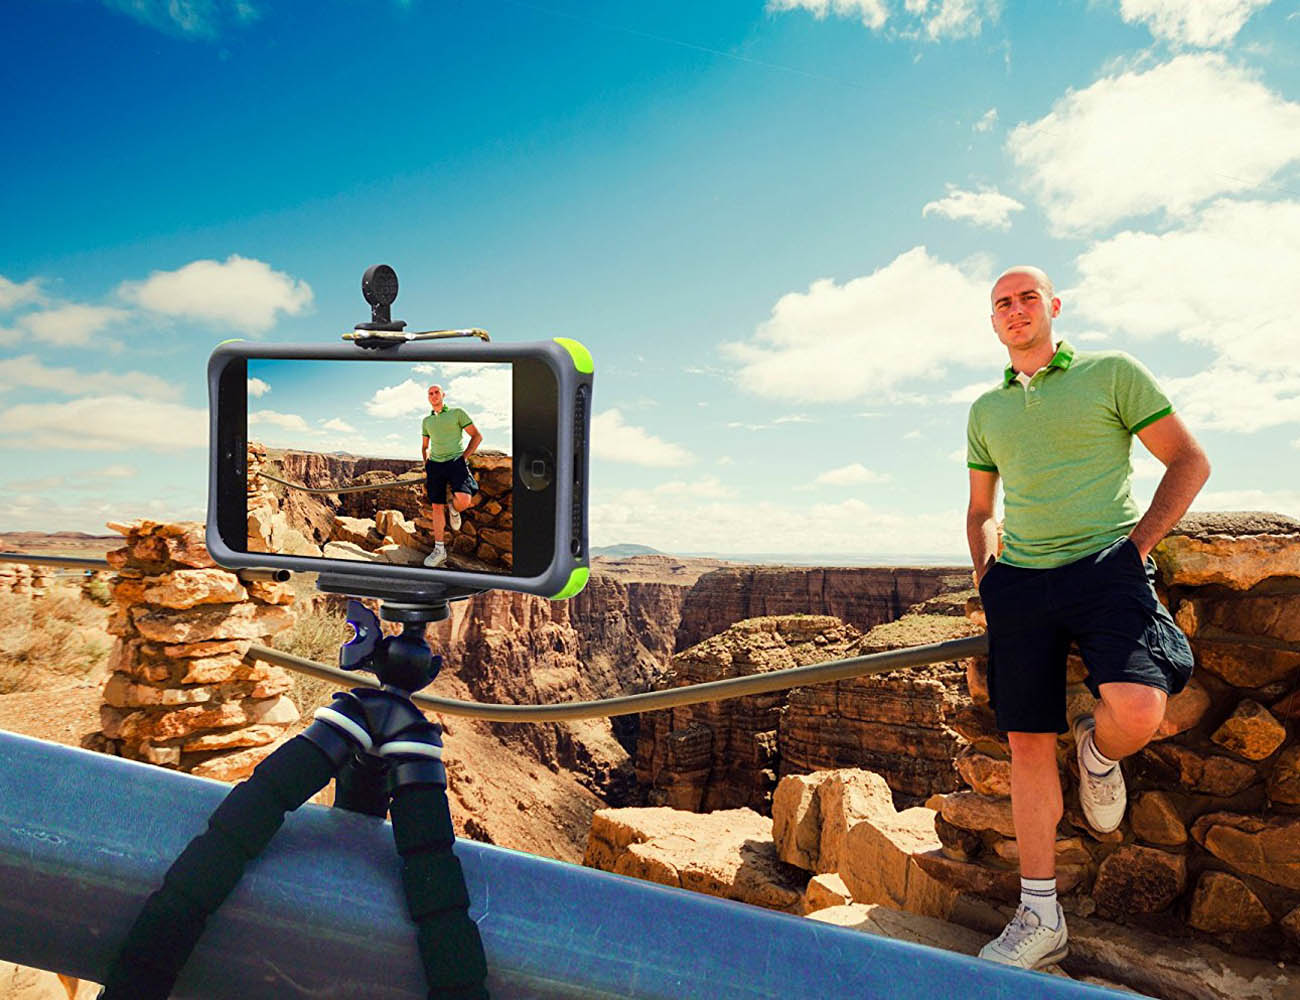 iStabilizer Flexible Smartphone Tripod